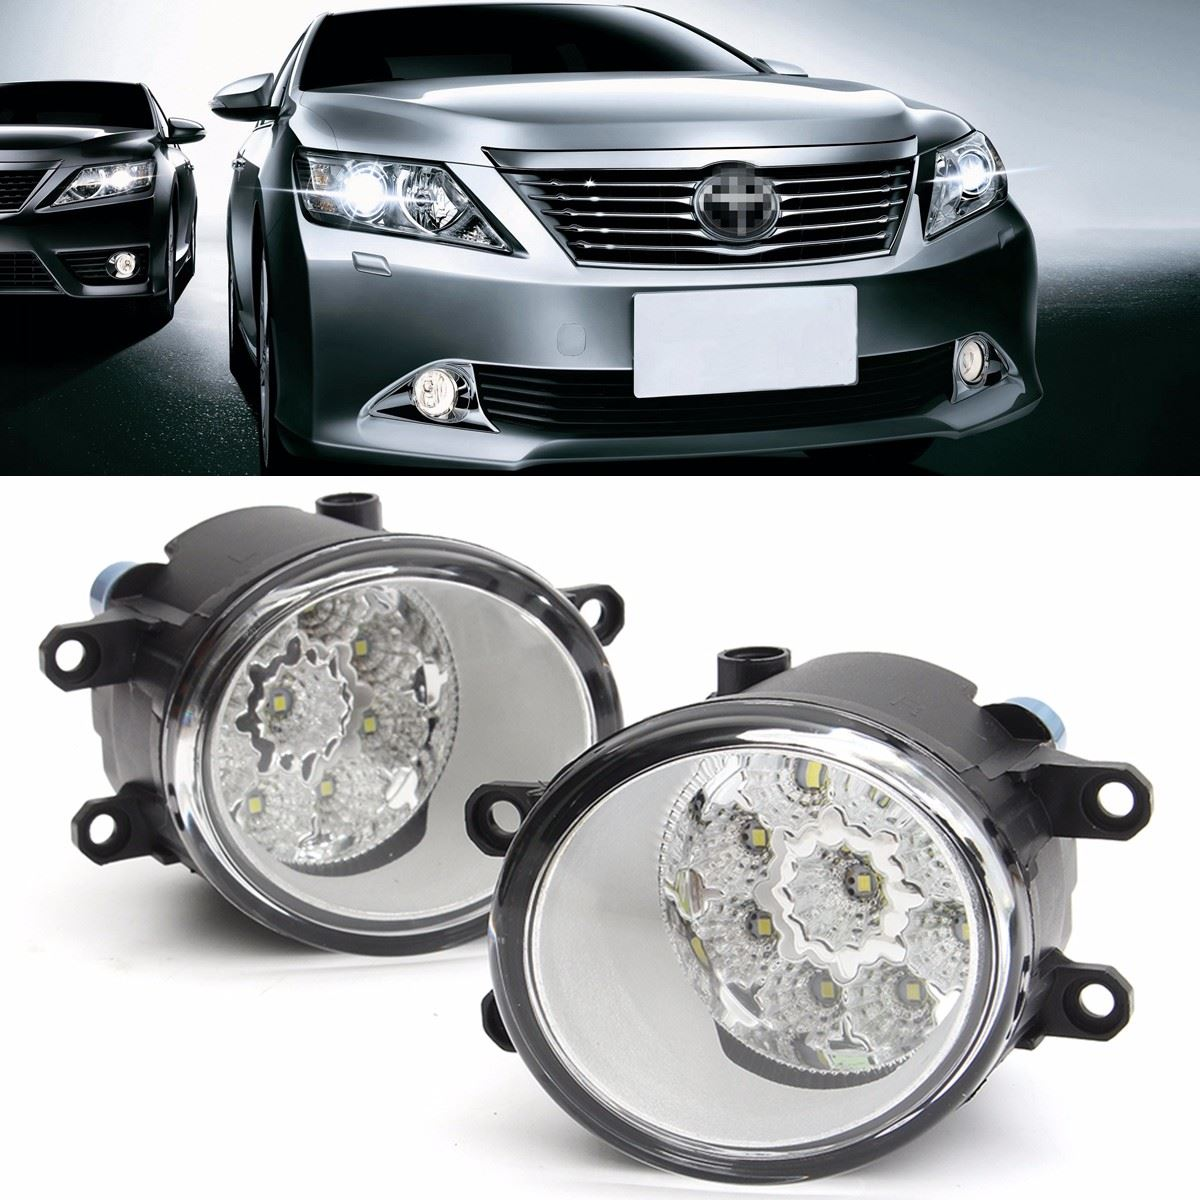 2016 Brand New Pair 9 LED Front Driving Fog Light Lamp For Toyota/Corolla/Camry/Yaris/Vios/RAV4